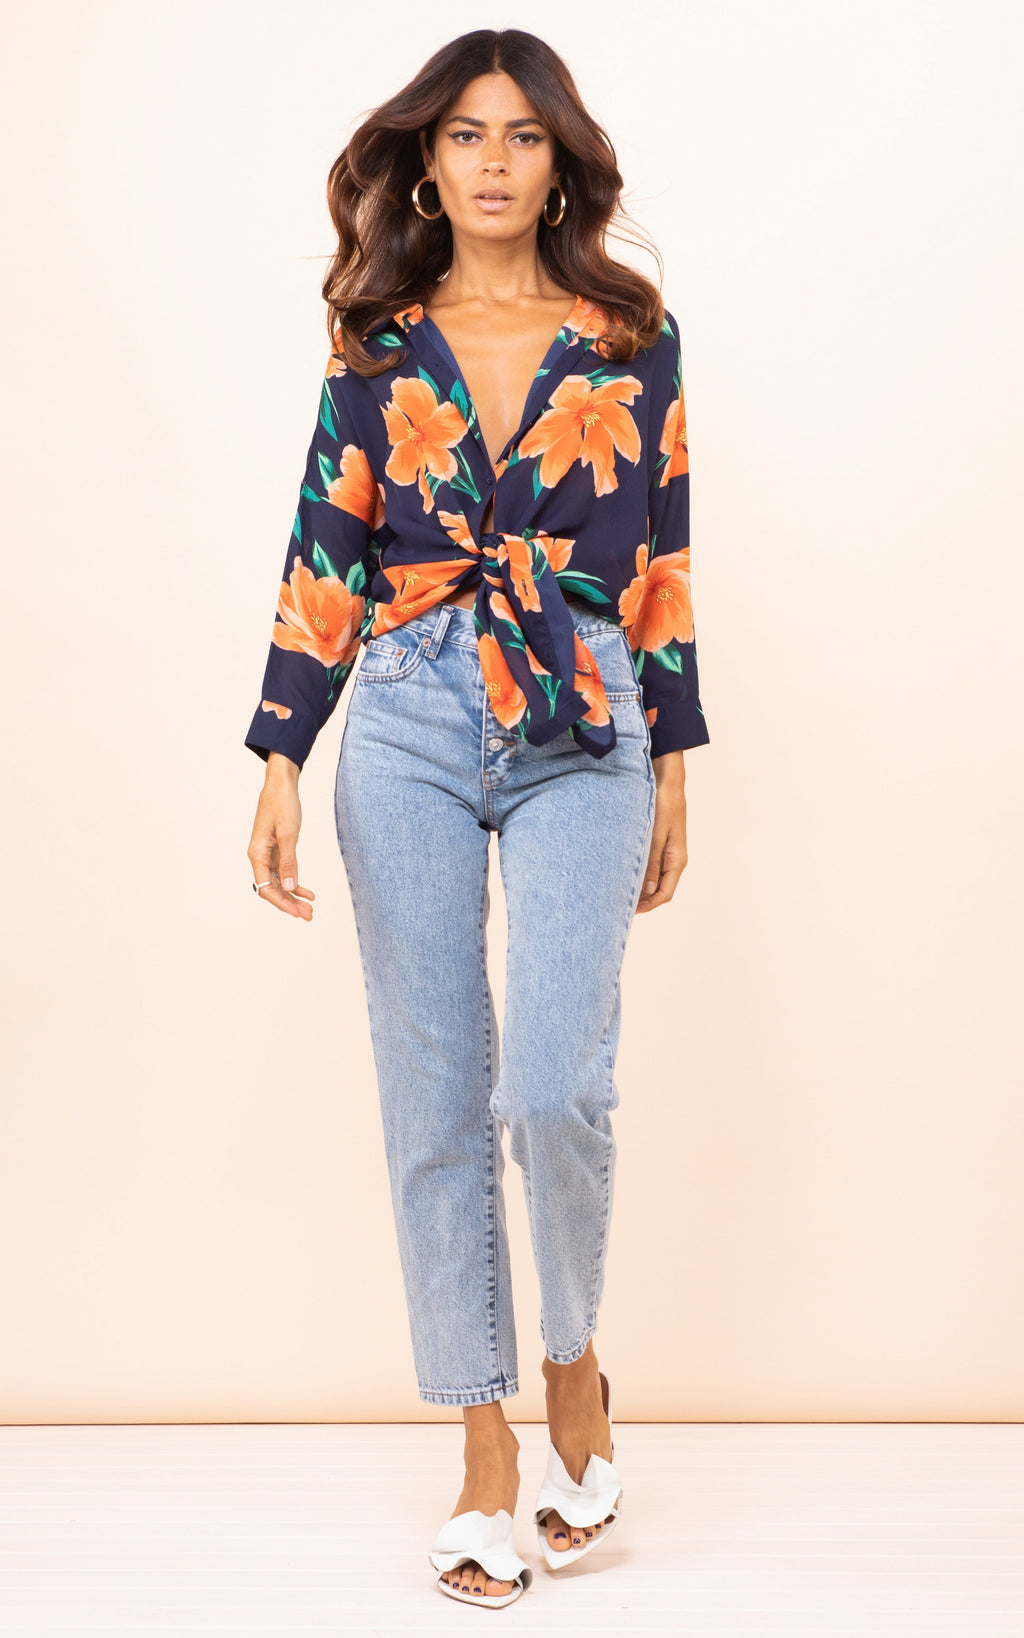 JERICHO SHIRT IN ORANGE ON NAVY TULIP - Dancing Leopard